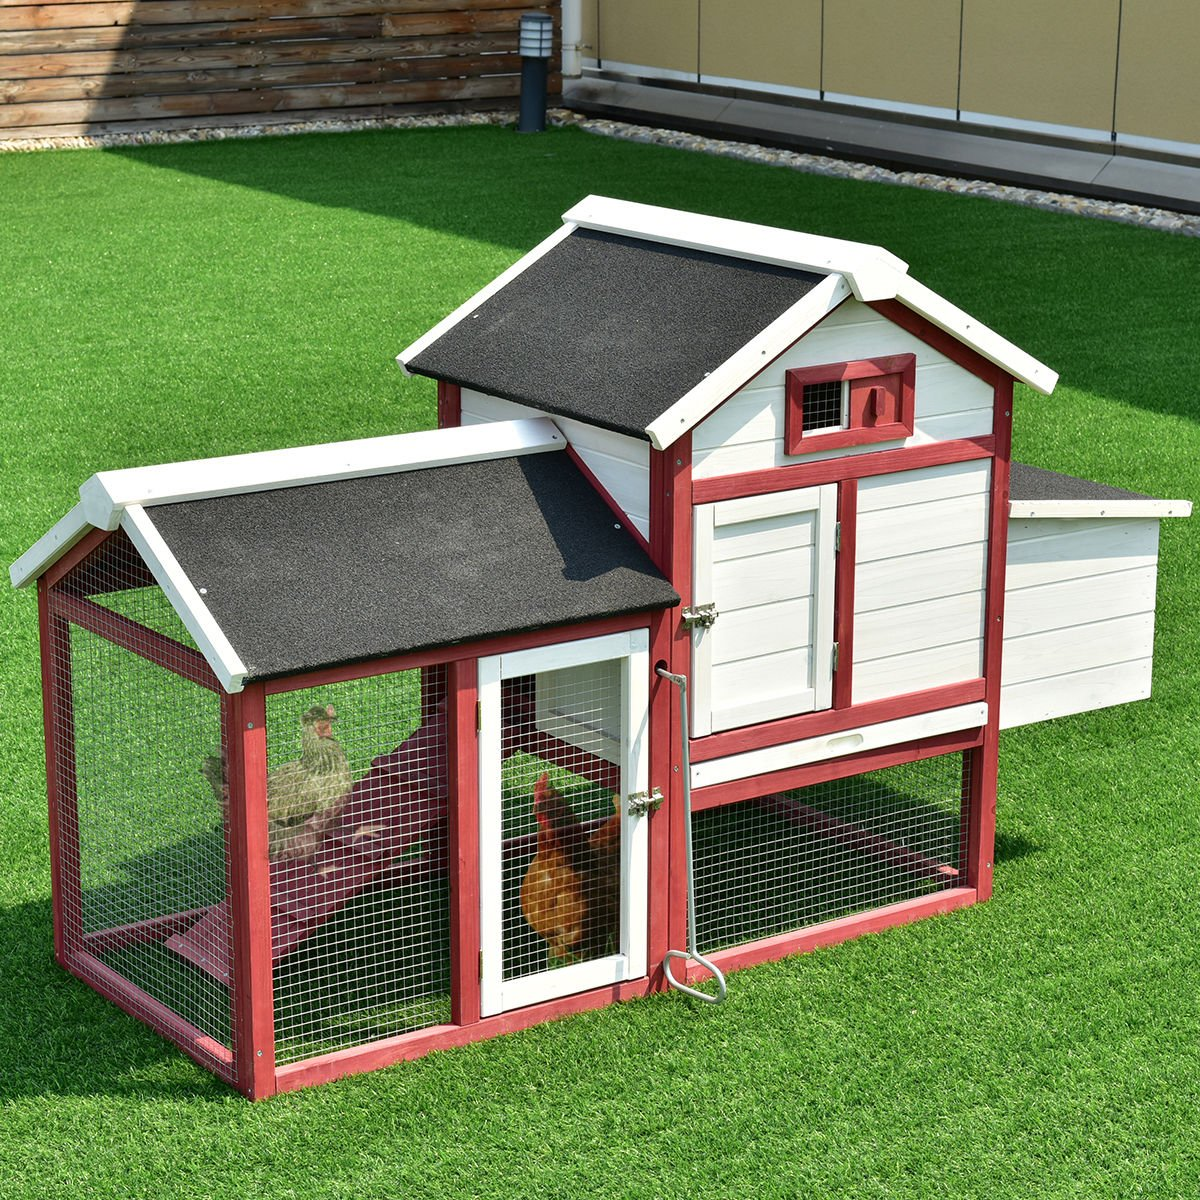 hutches box house hen nesting merax dp coop amazon small supplies wooden pet hutch chicken opzl for com cage animals